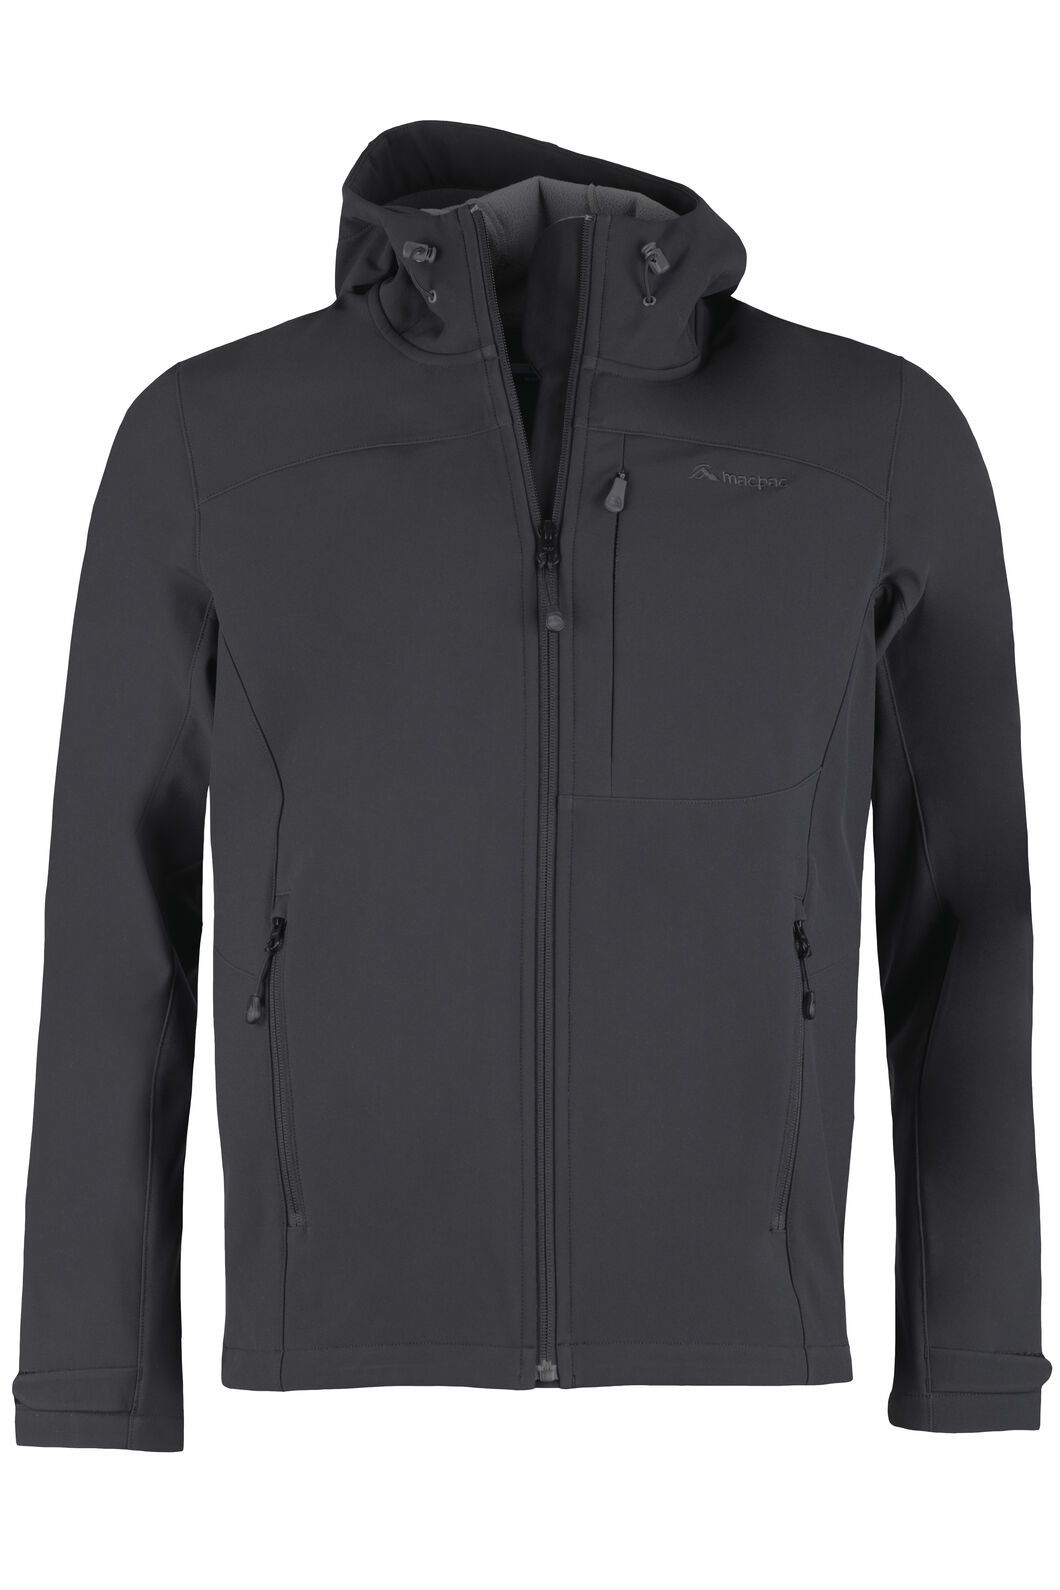 Sabre Hooded Softshell Jacket - Men's, Black, hi-res